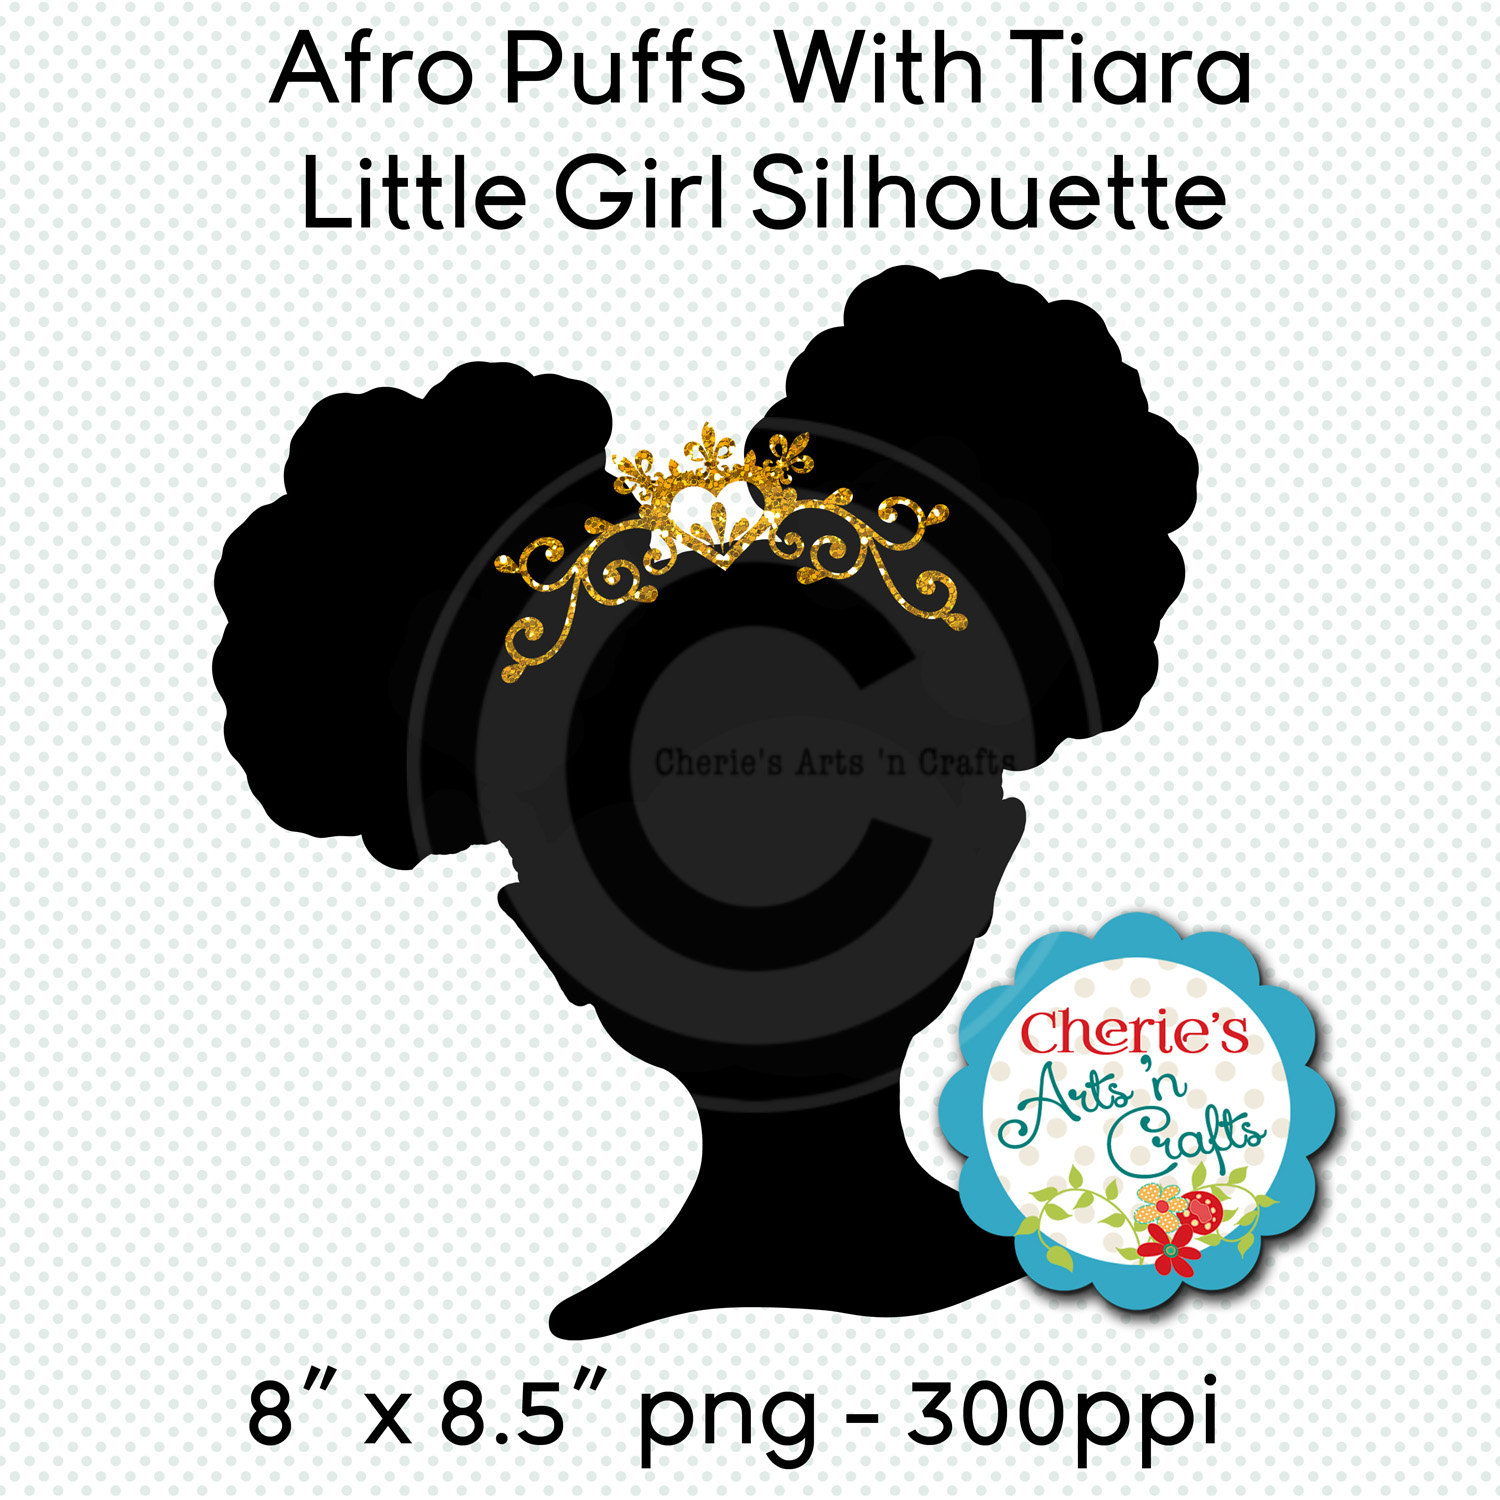 1500x1500 Little Girl Silhouette African Girl Silhouette Natural